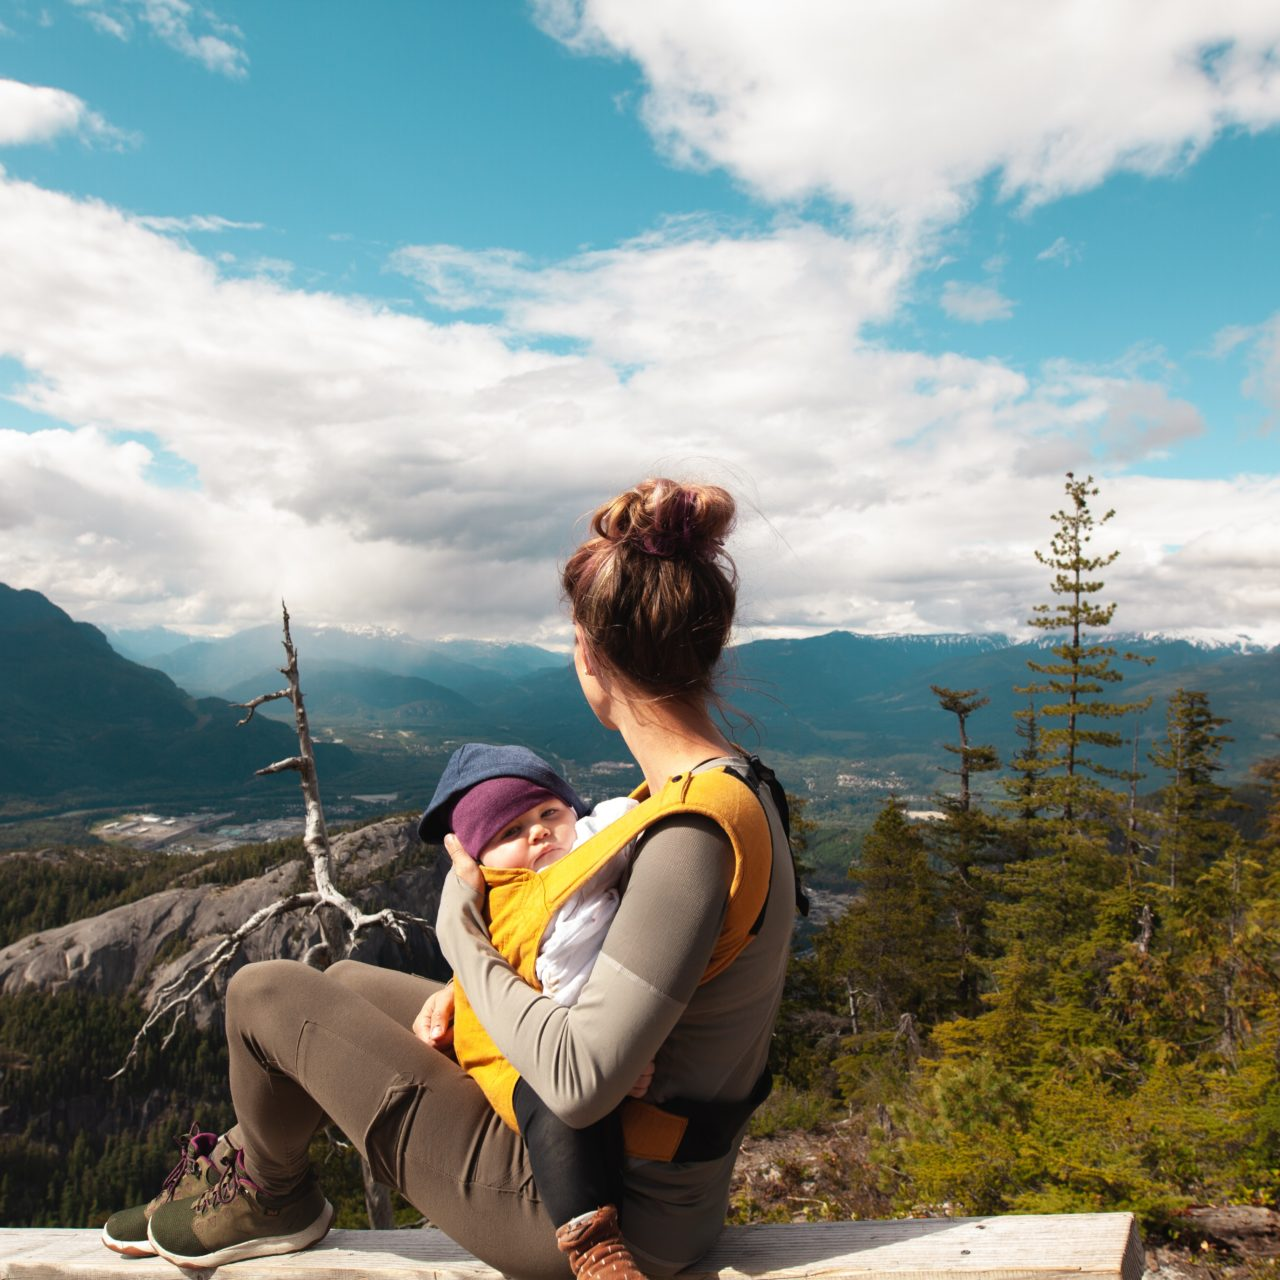 https://www.elevatehwc.com/wp-content/uploads/2019/04/mom-on-a-hike-with-baby-1280x1280.jpg